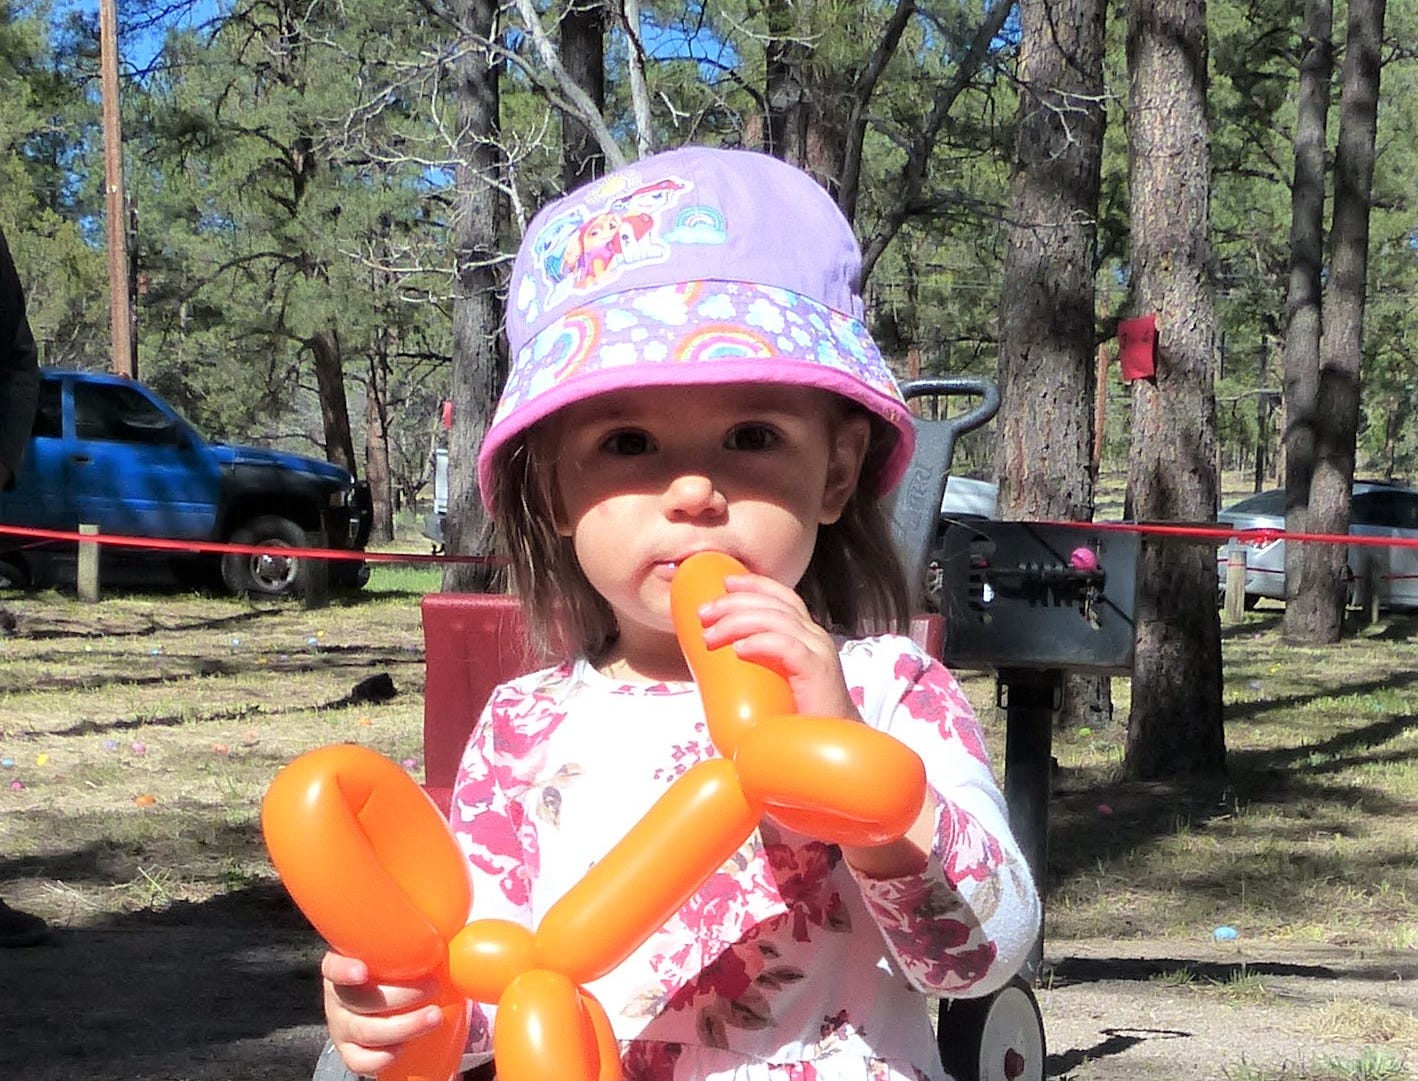 She's checking out if a balloon animal taste as good as it looks.